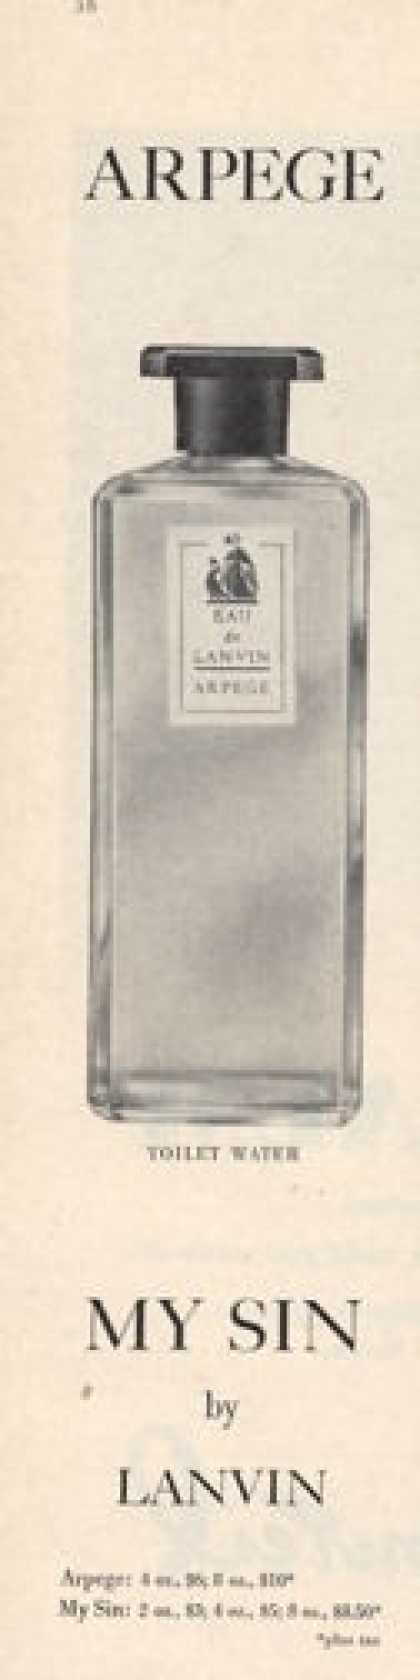 Arpege My Sin Lanvin Bottle (1952)